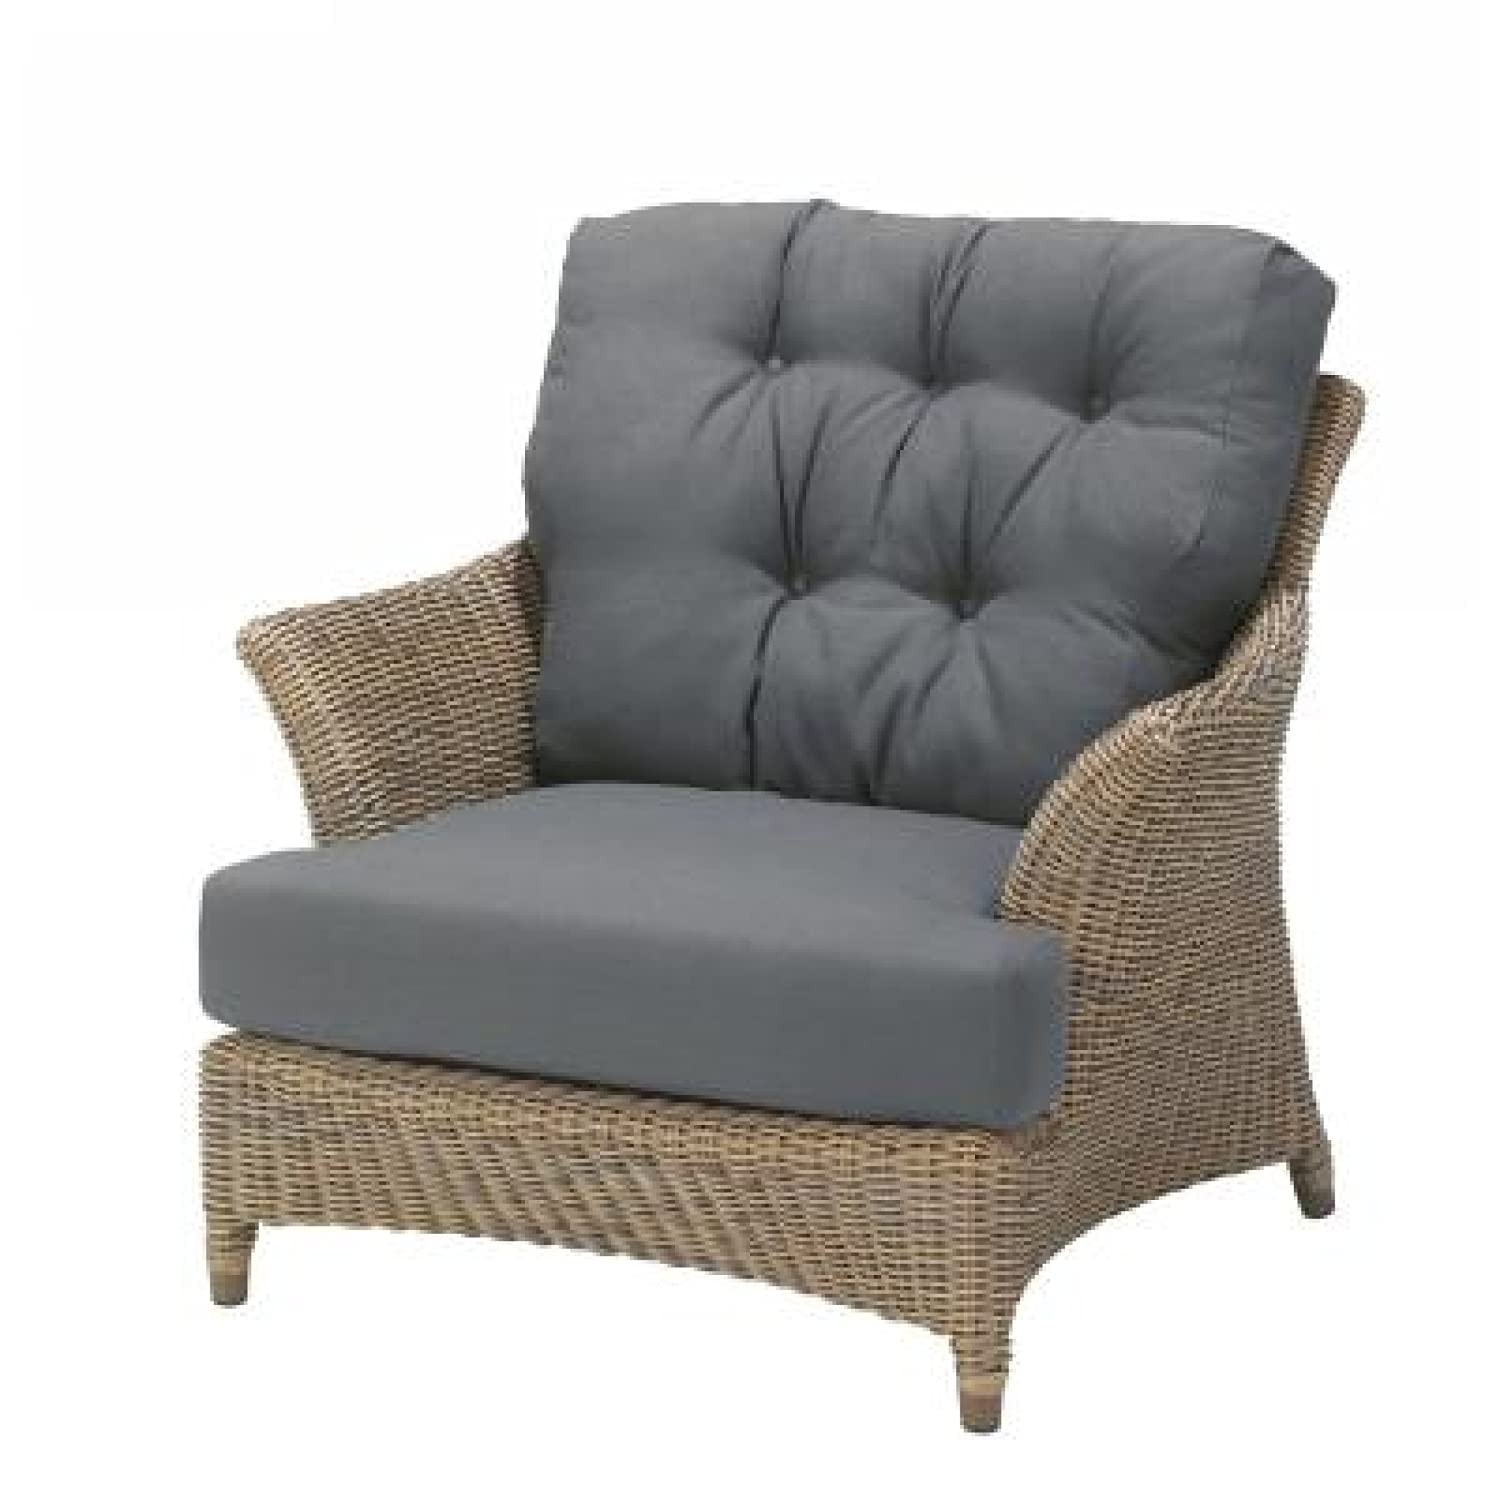 4Seasons Outdoor Valentine Sessel living Polyrattan pure